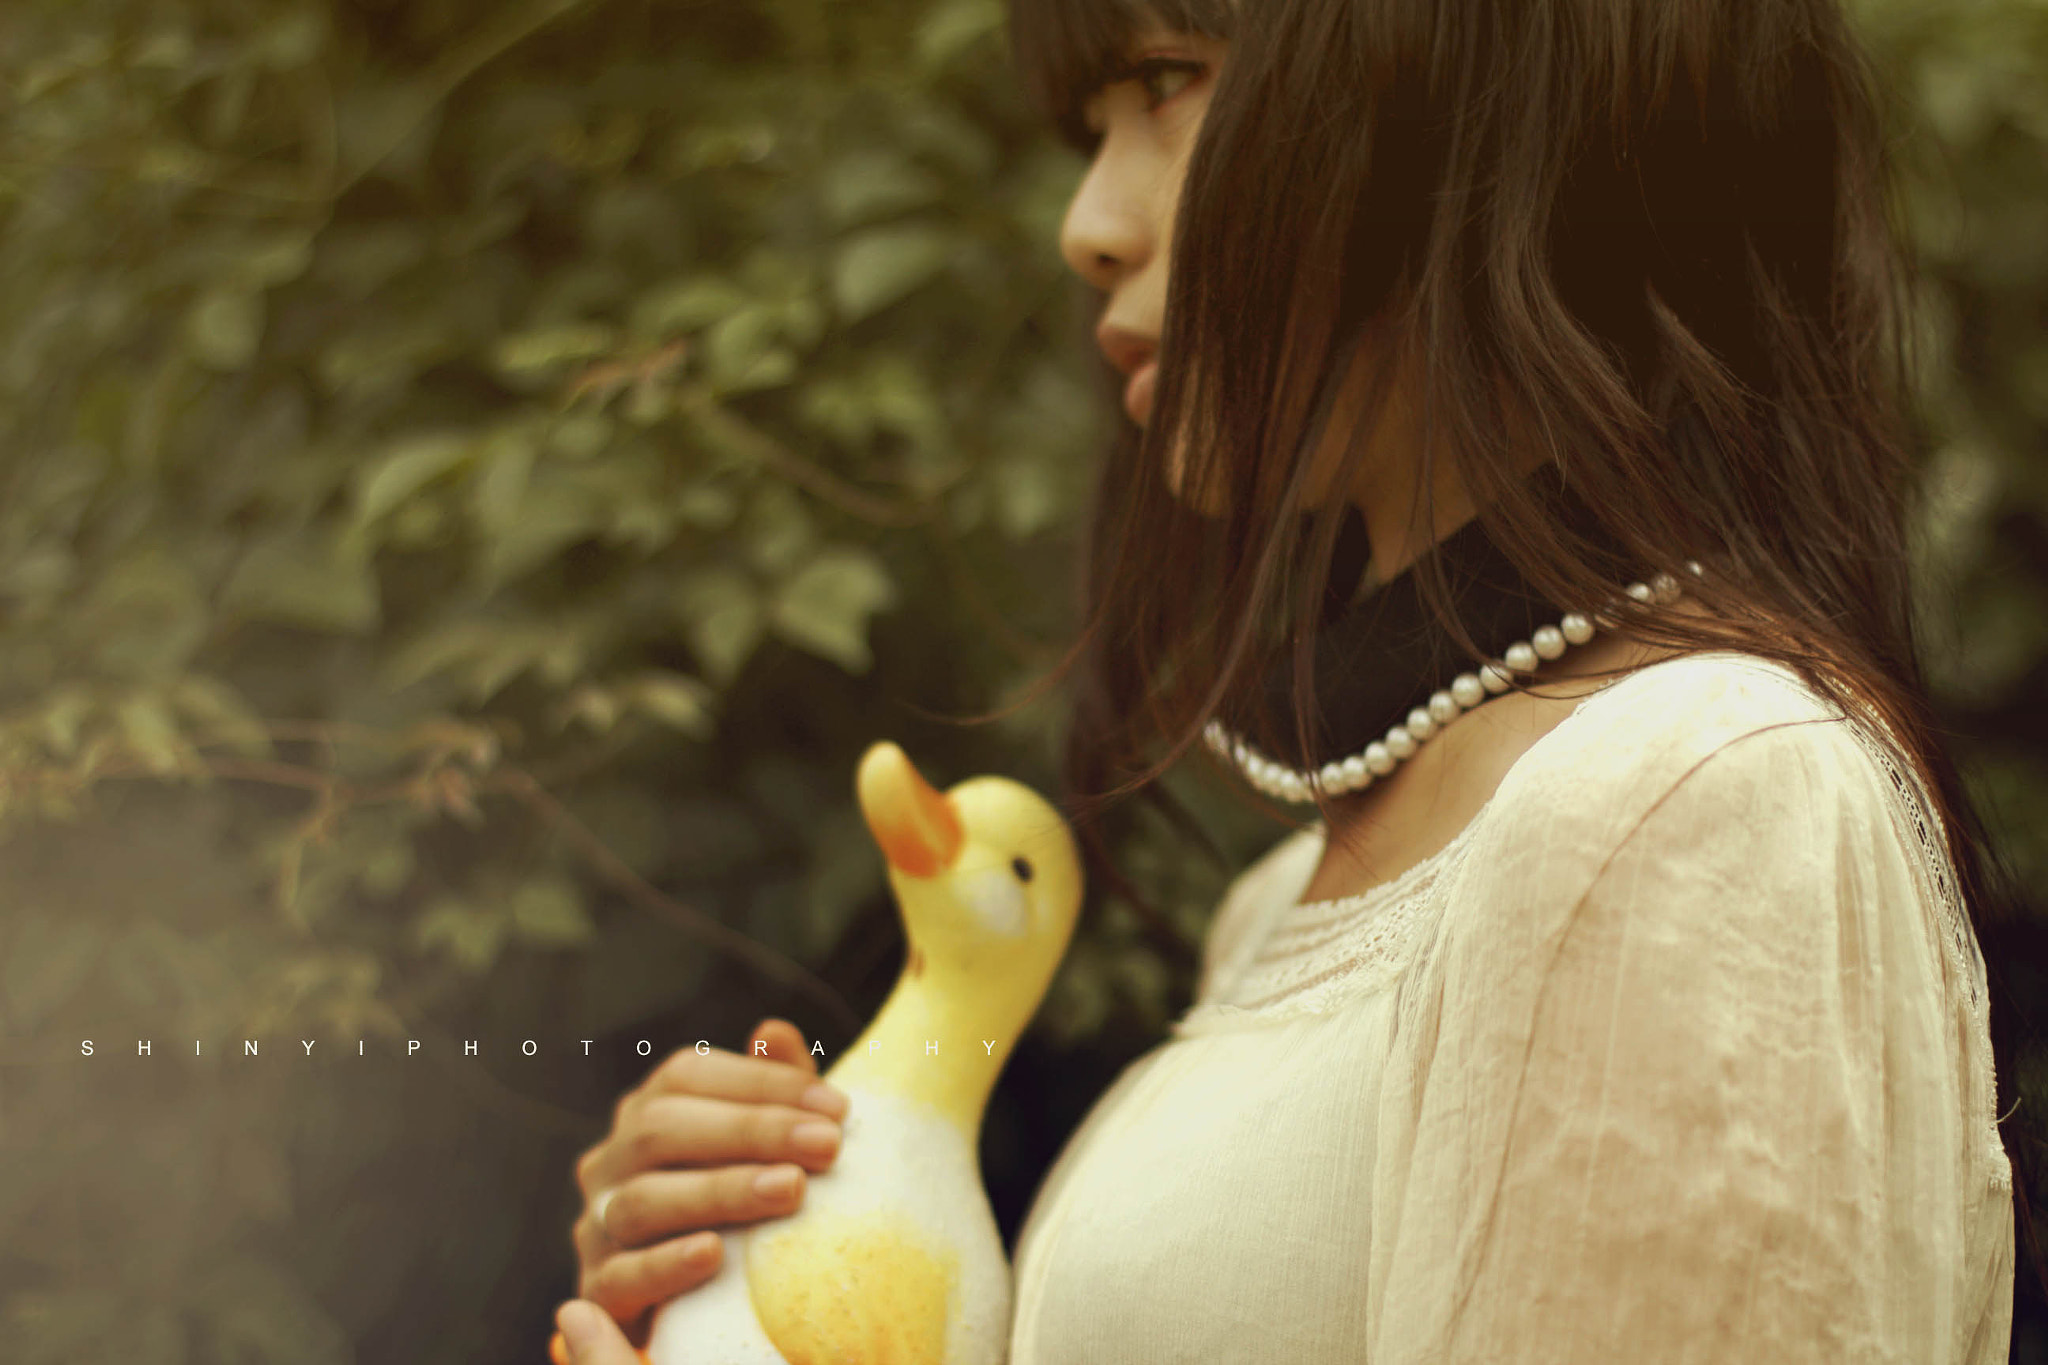 Photograph ducky by Shinyi An on 500px